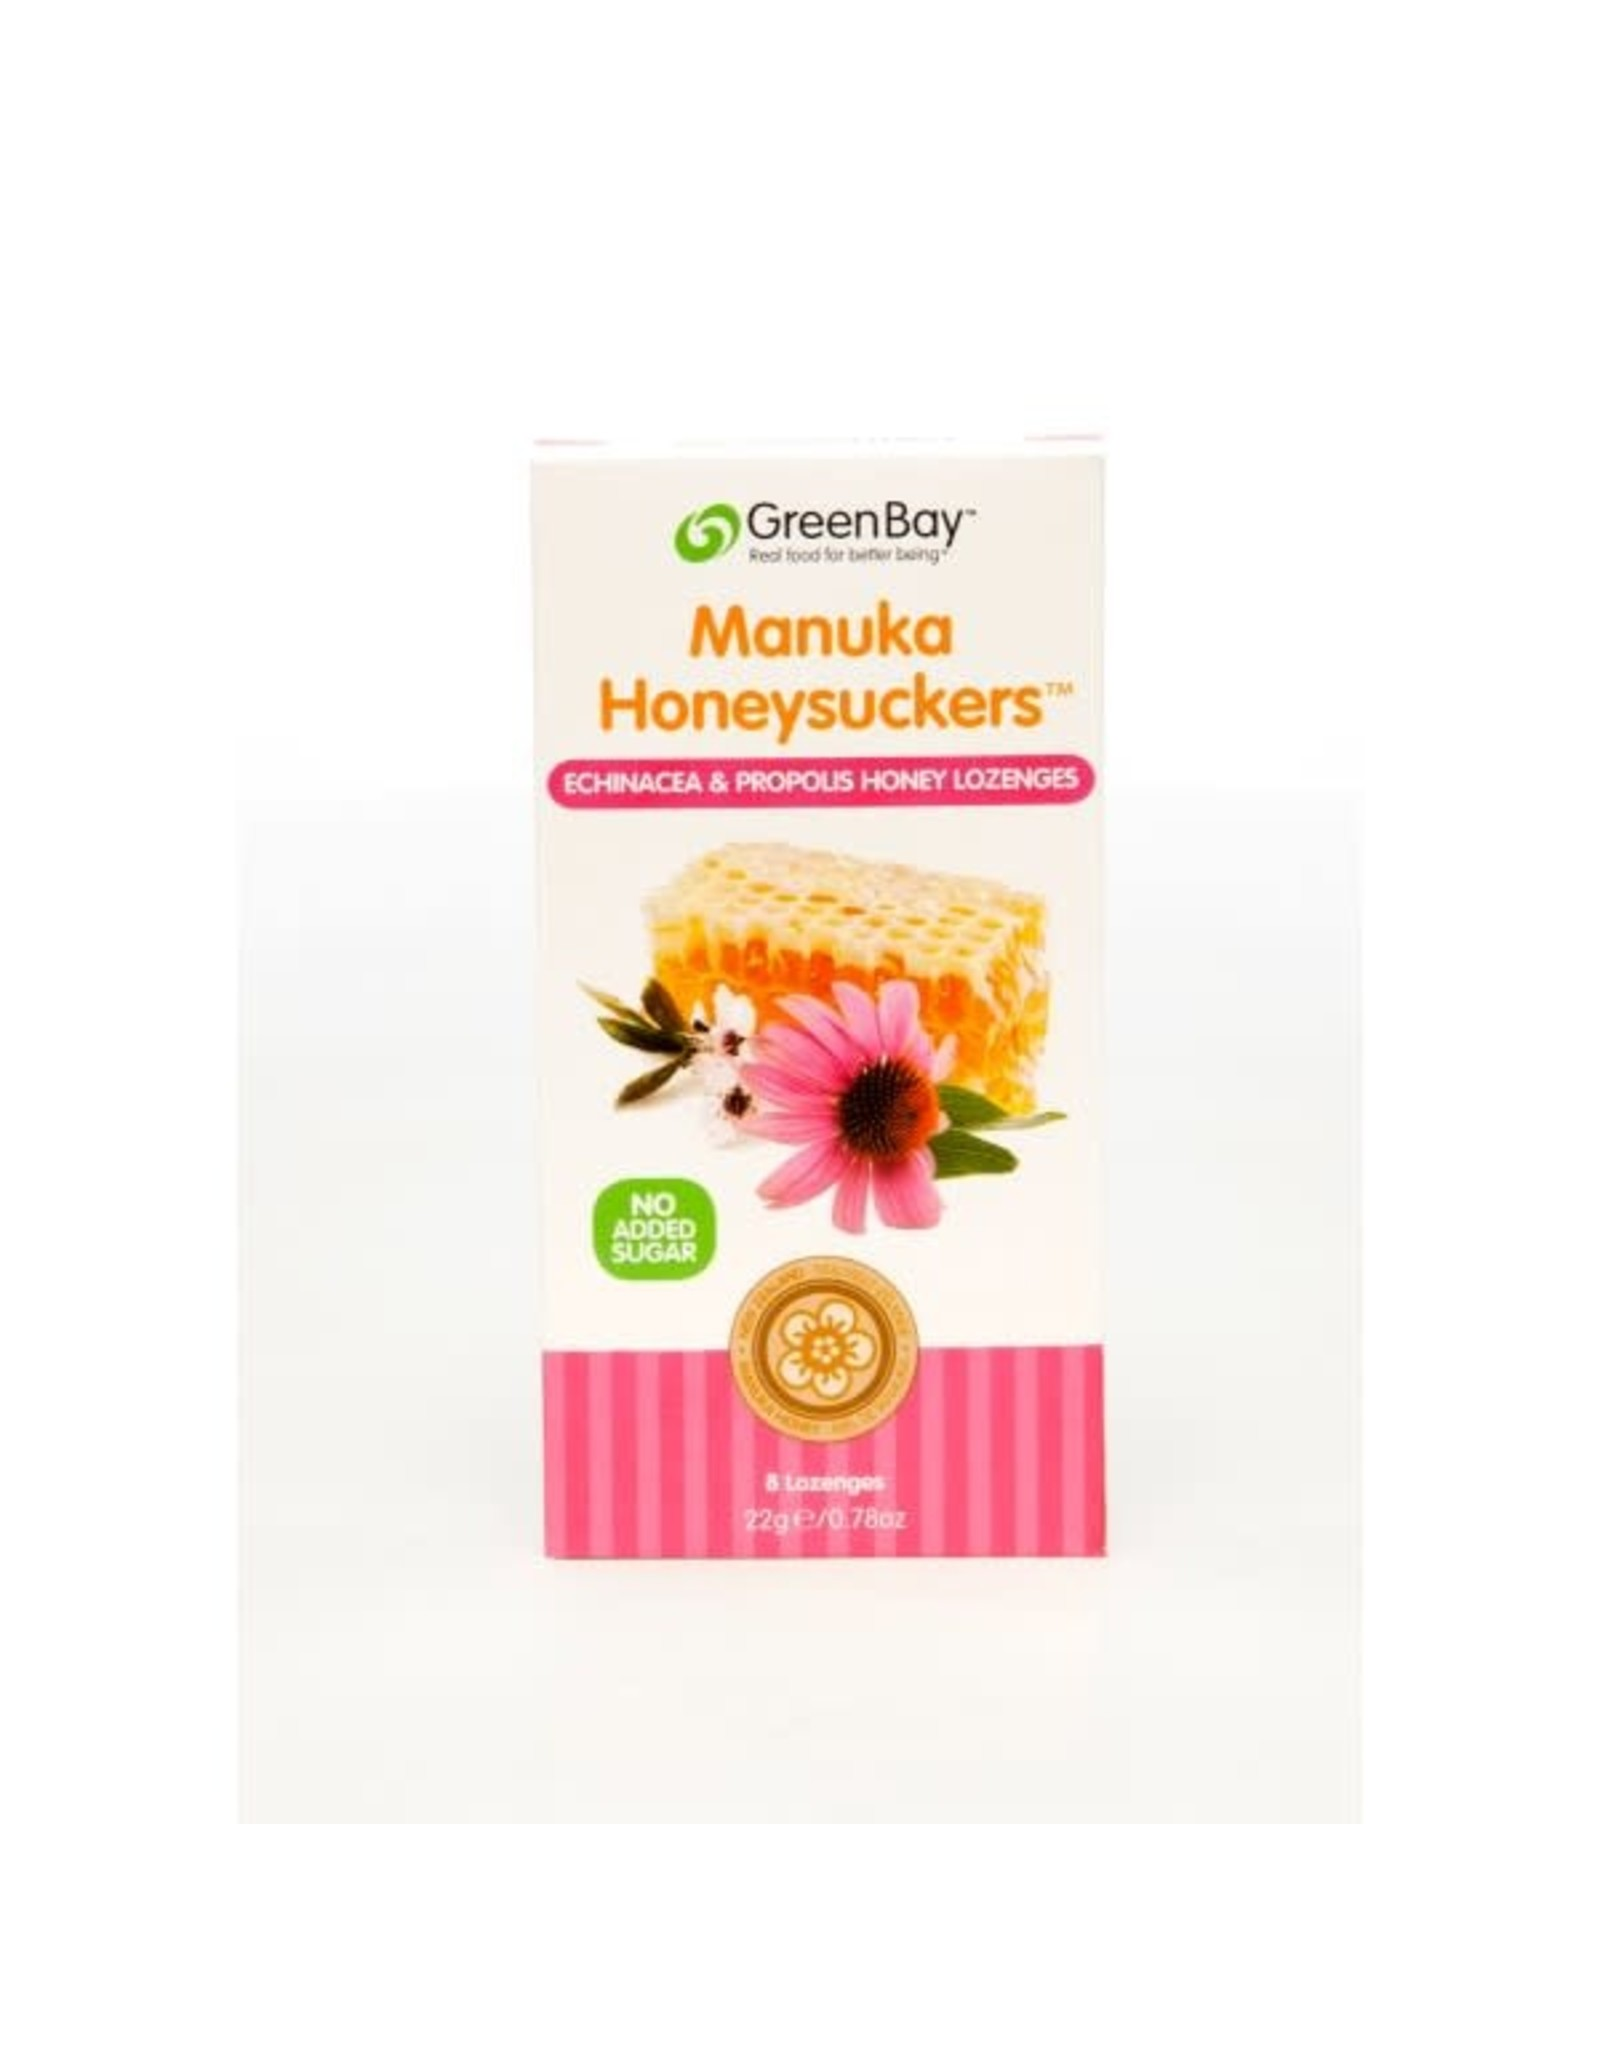 Green Bay Echinacea & Propolis Manuka Honey Lozenges